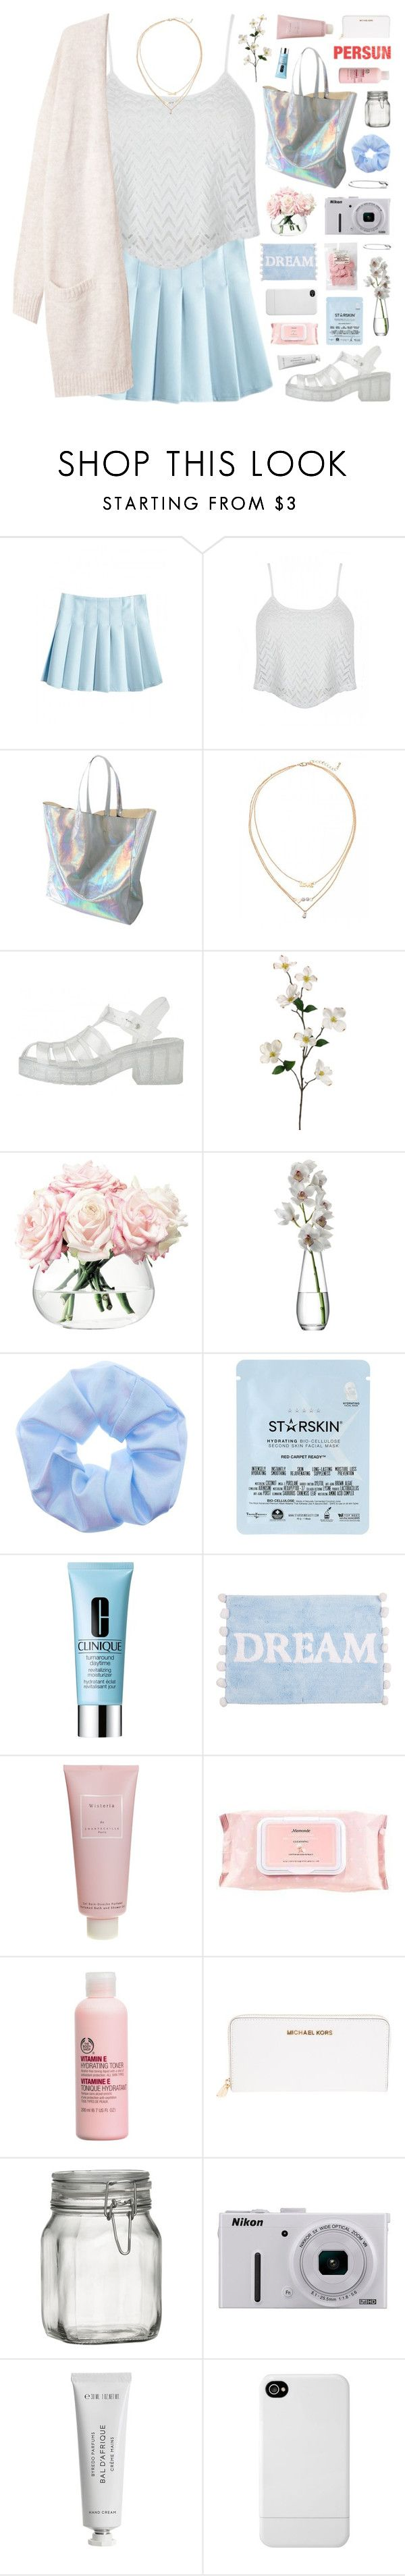 """""""Persunmall 1"""" by novalikarida ❤ liked on Polyvore featuring LSA International, Starskin, Clinique, Zara Home, Chantecaille, Mamonde, The Body Shop, Michael Kors, Crate and Barrel and Nikon"""